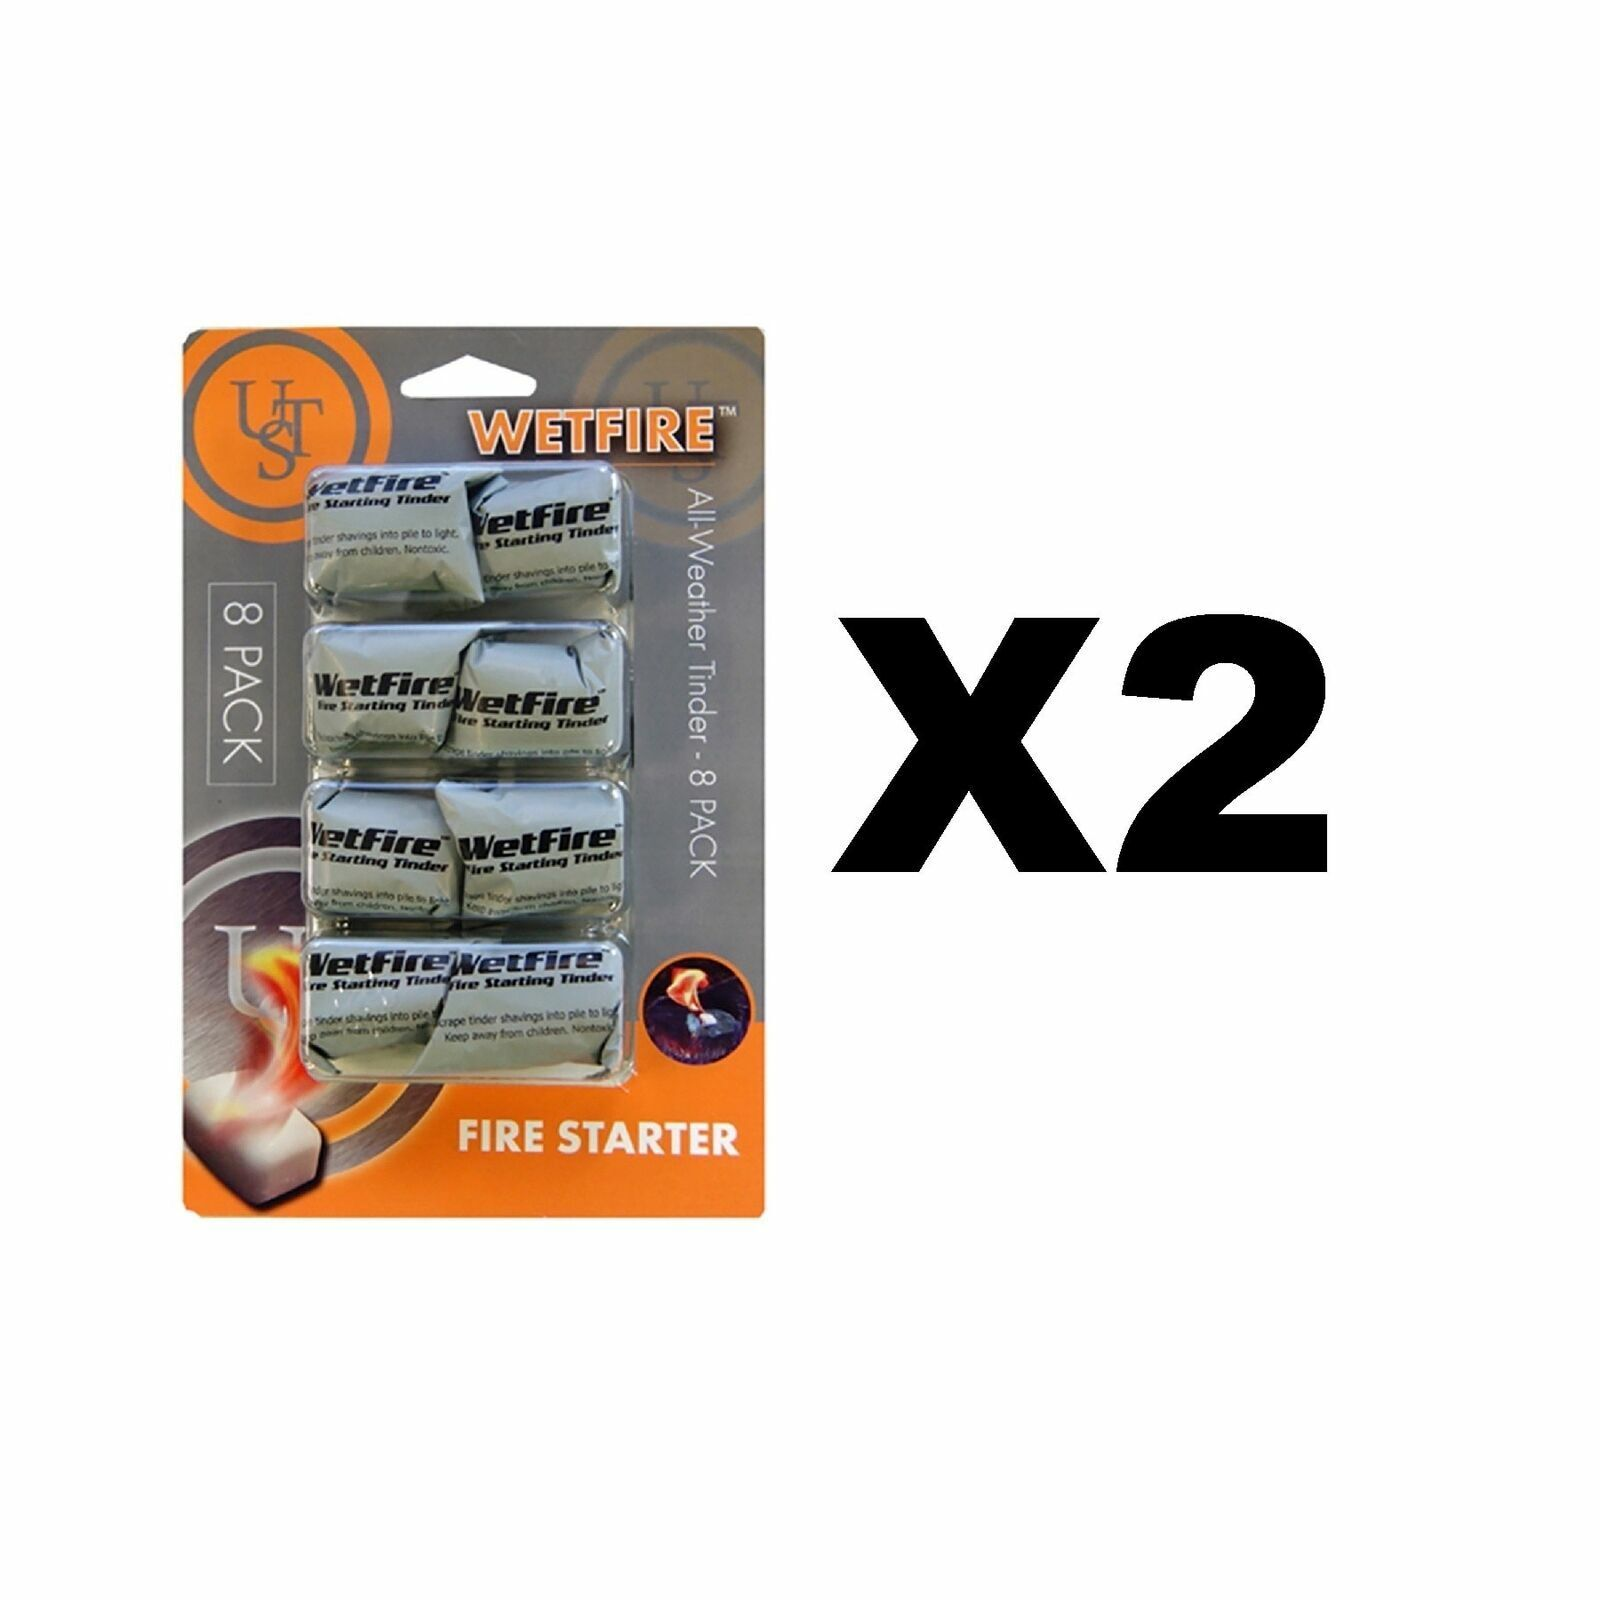 Wetfire Fire Starting Tender - 8 Pack Wet Fire - Ultimate Su